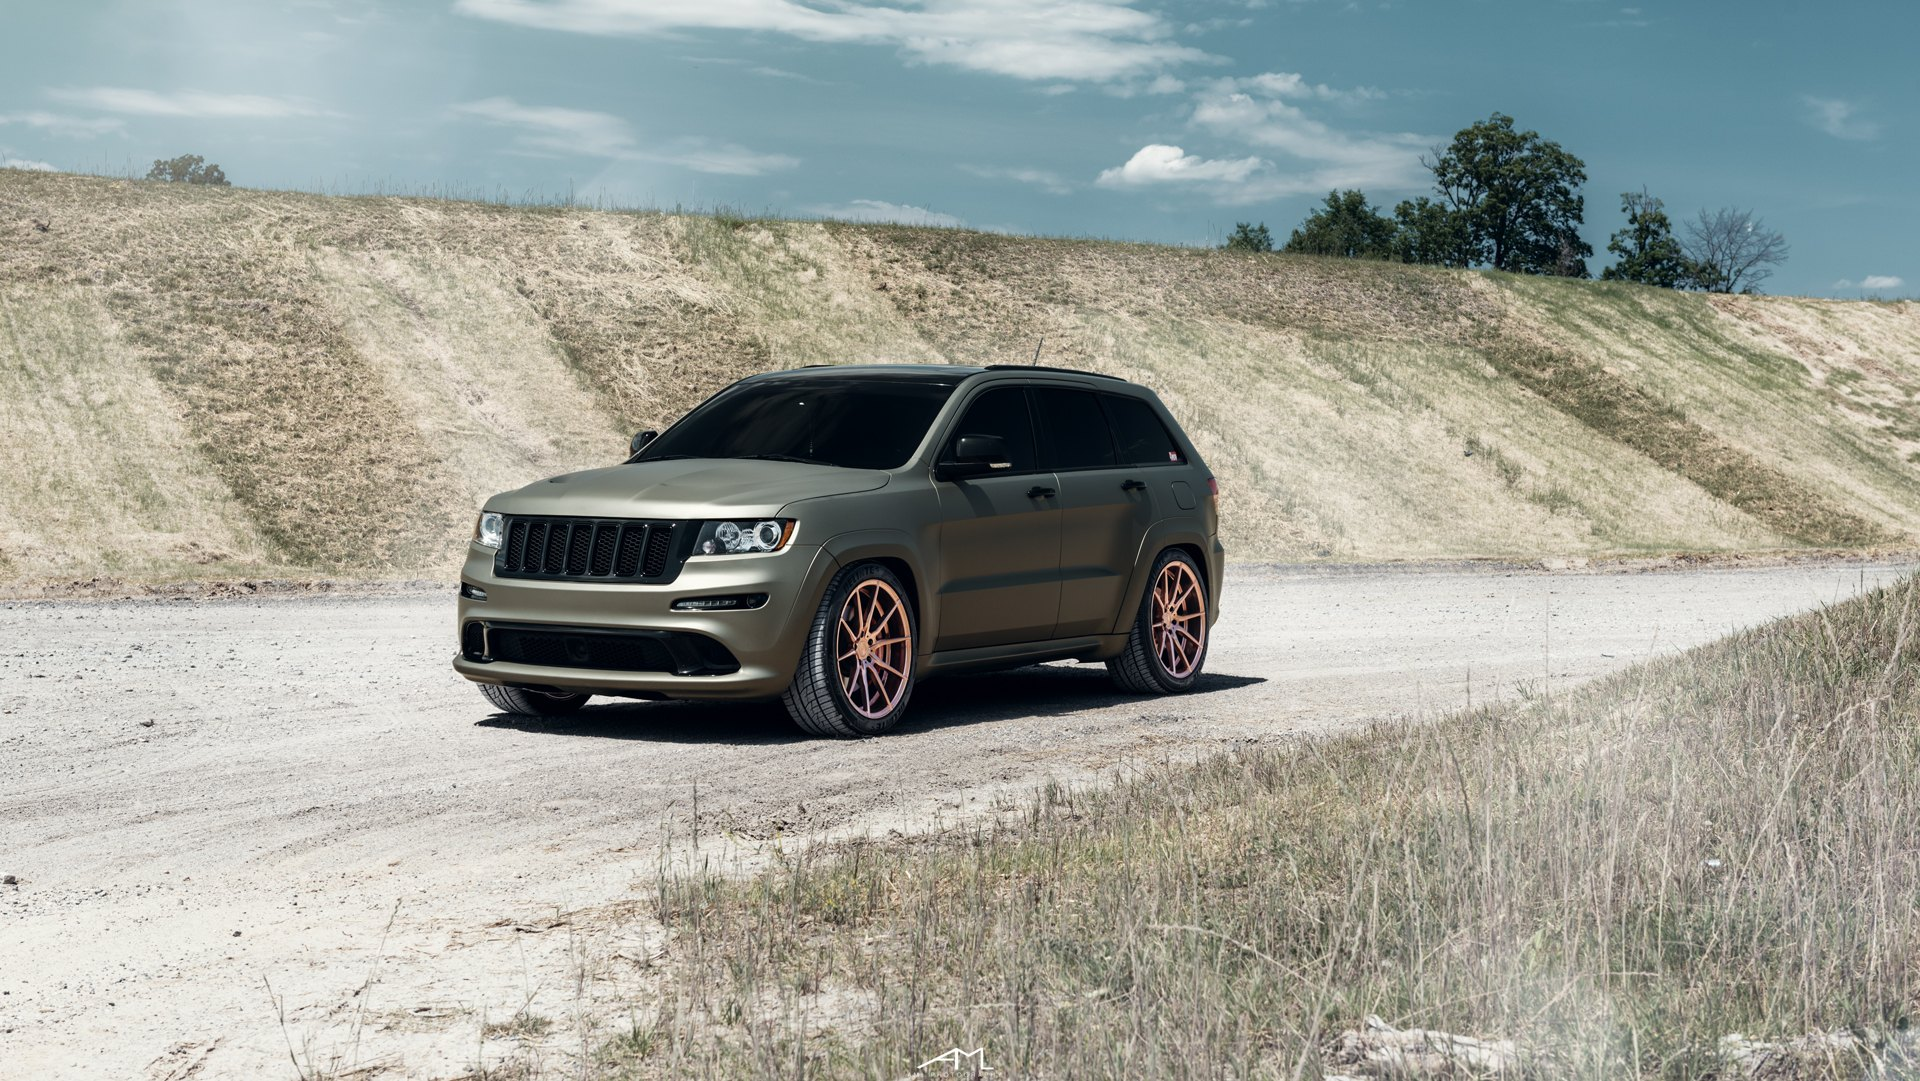 Custom Jeep Grand Cherokee >> Magnetic Olive Matte Jeep Grand Cherokee Customized And Put On Matte